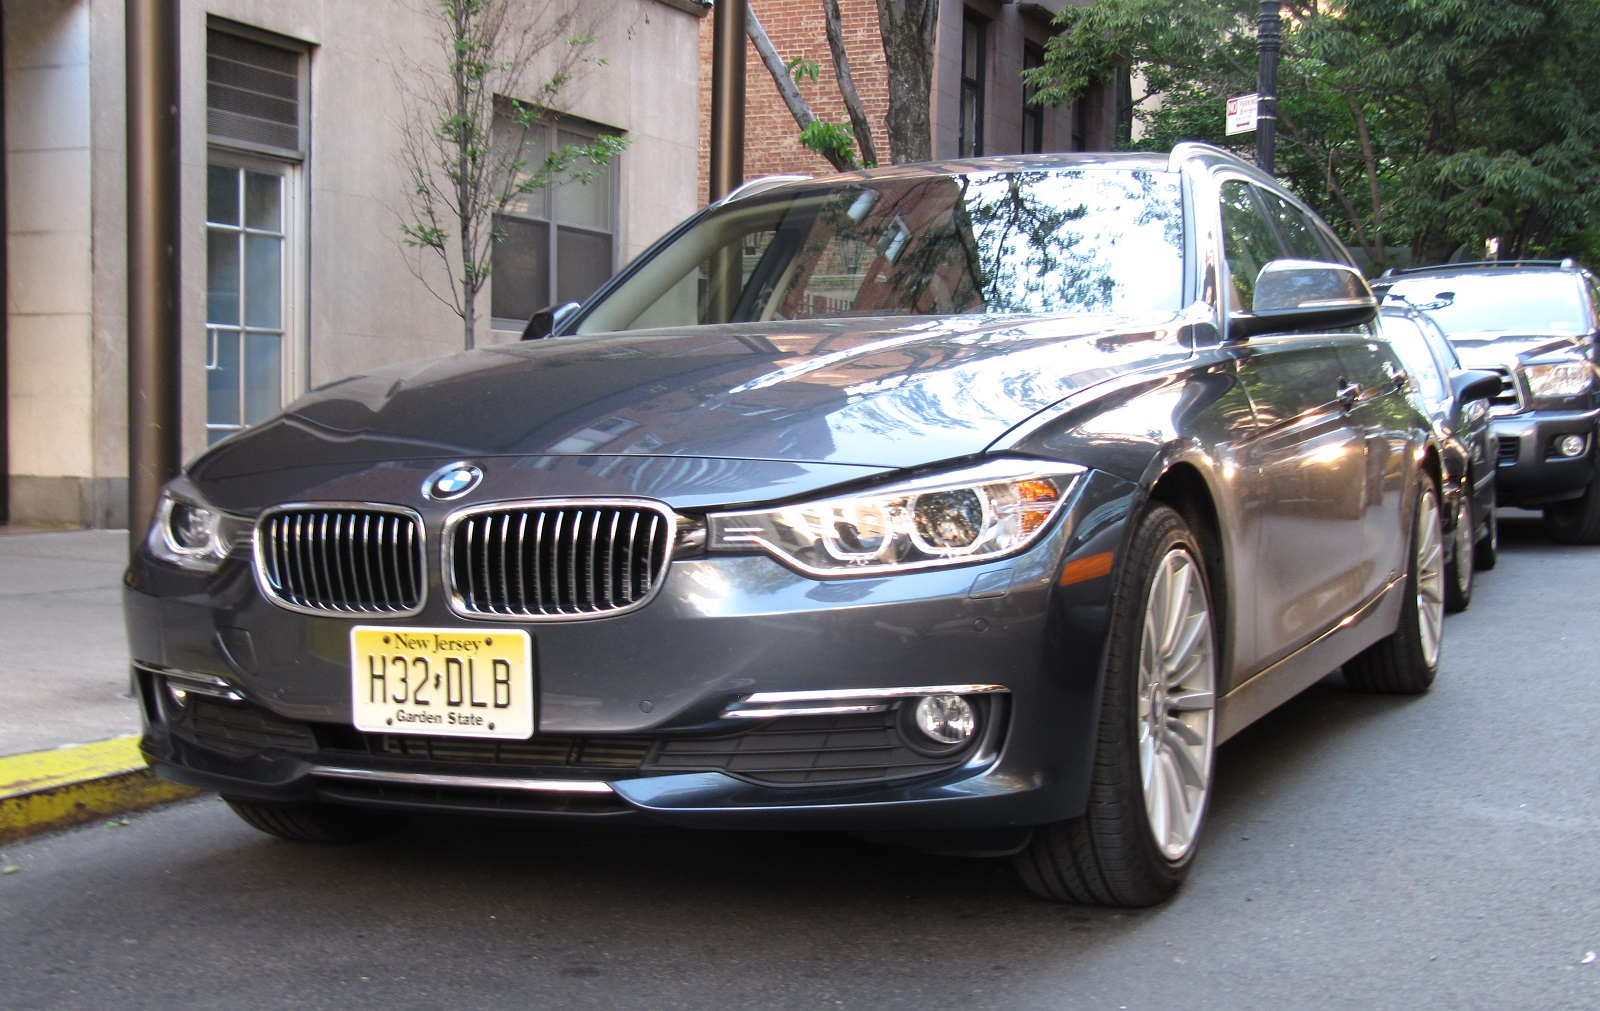 BMW D XDrive MPG Diesel Sport Wagon Reviewed - Bmw 328d xdrive wagon